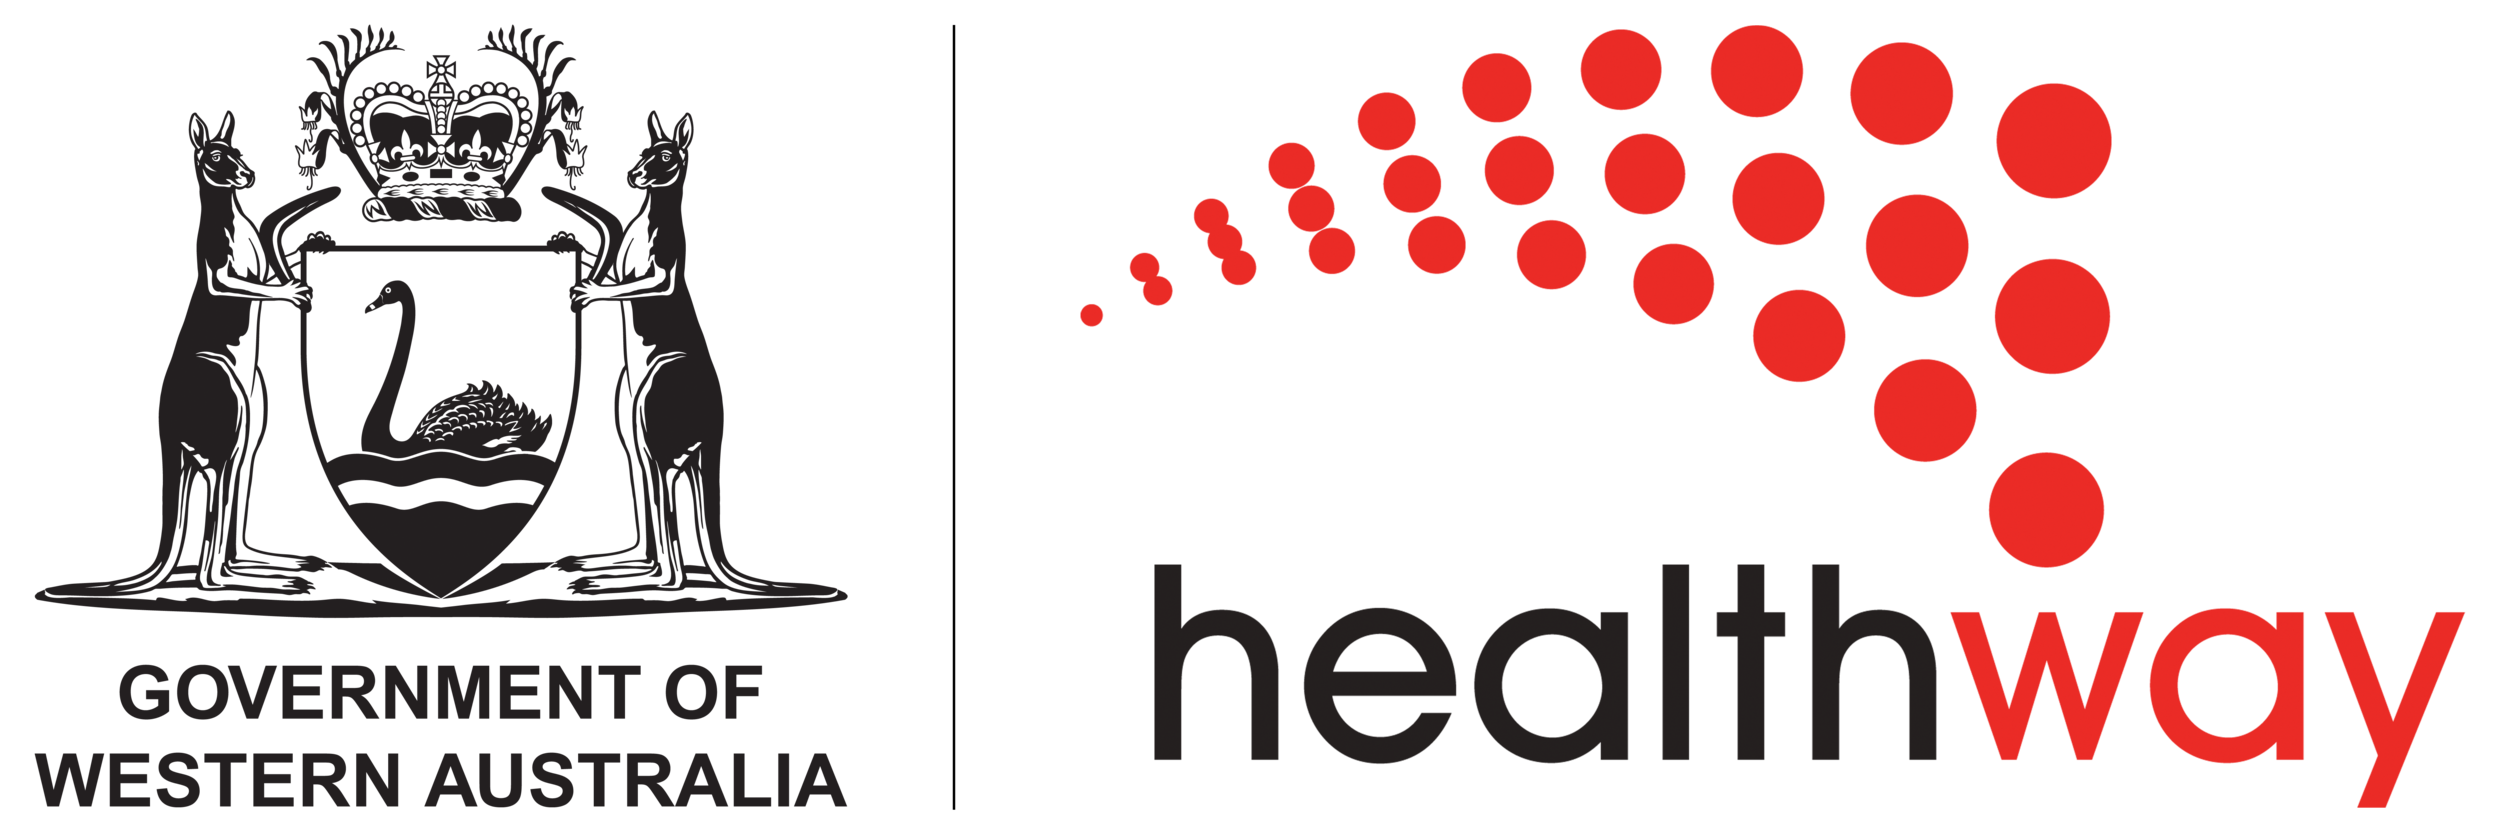 STATE COAT OF ARMS AND HEALTHWAY LOGO.png